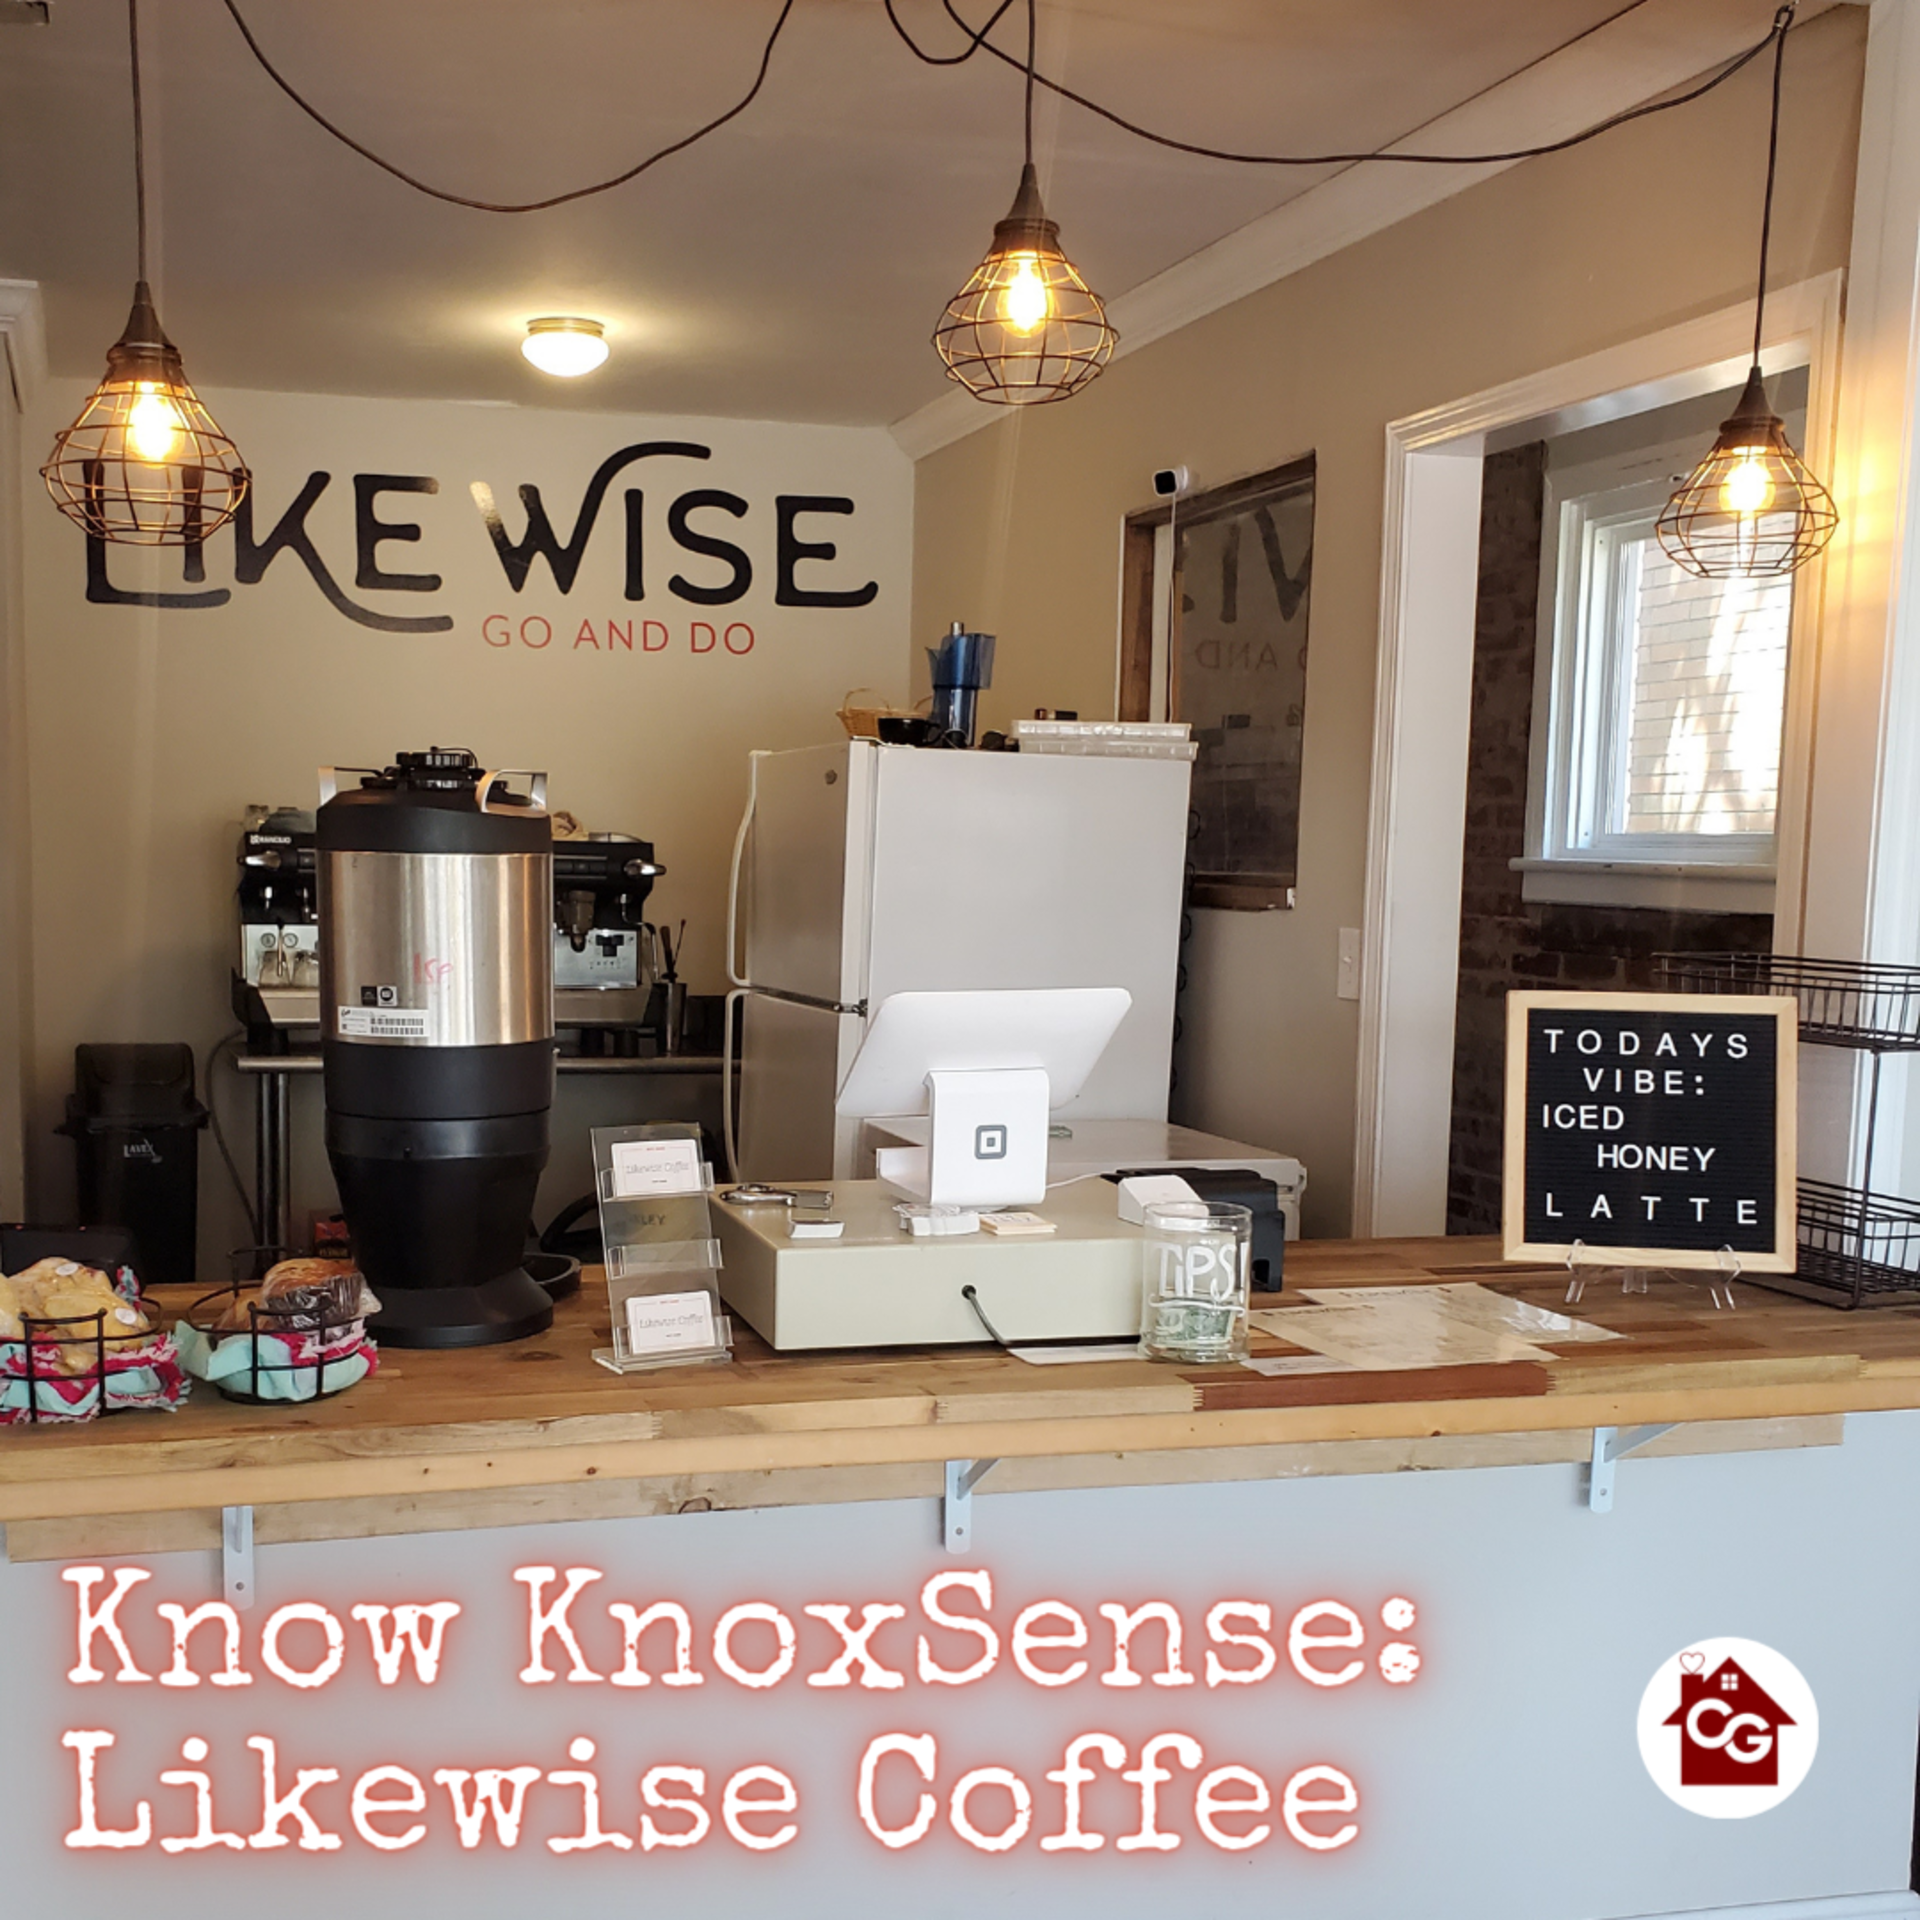 Know Knoxsense: Likewise Coffee